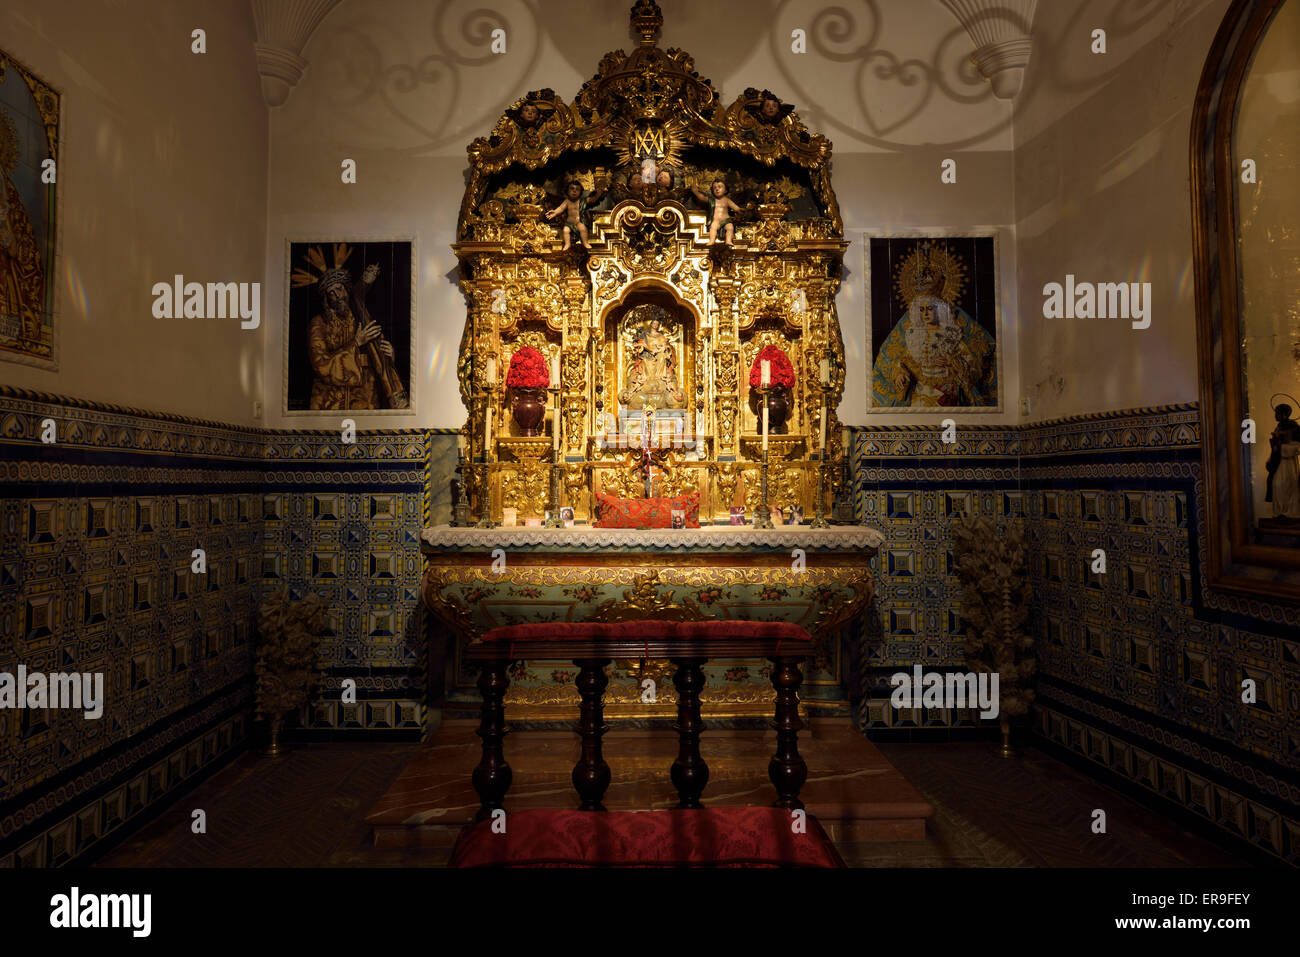 Matador chapel Blessed Virgin Mary Our Lady of Charity at the Seville bullring - Stock Image